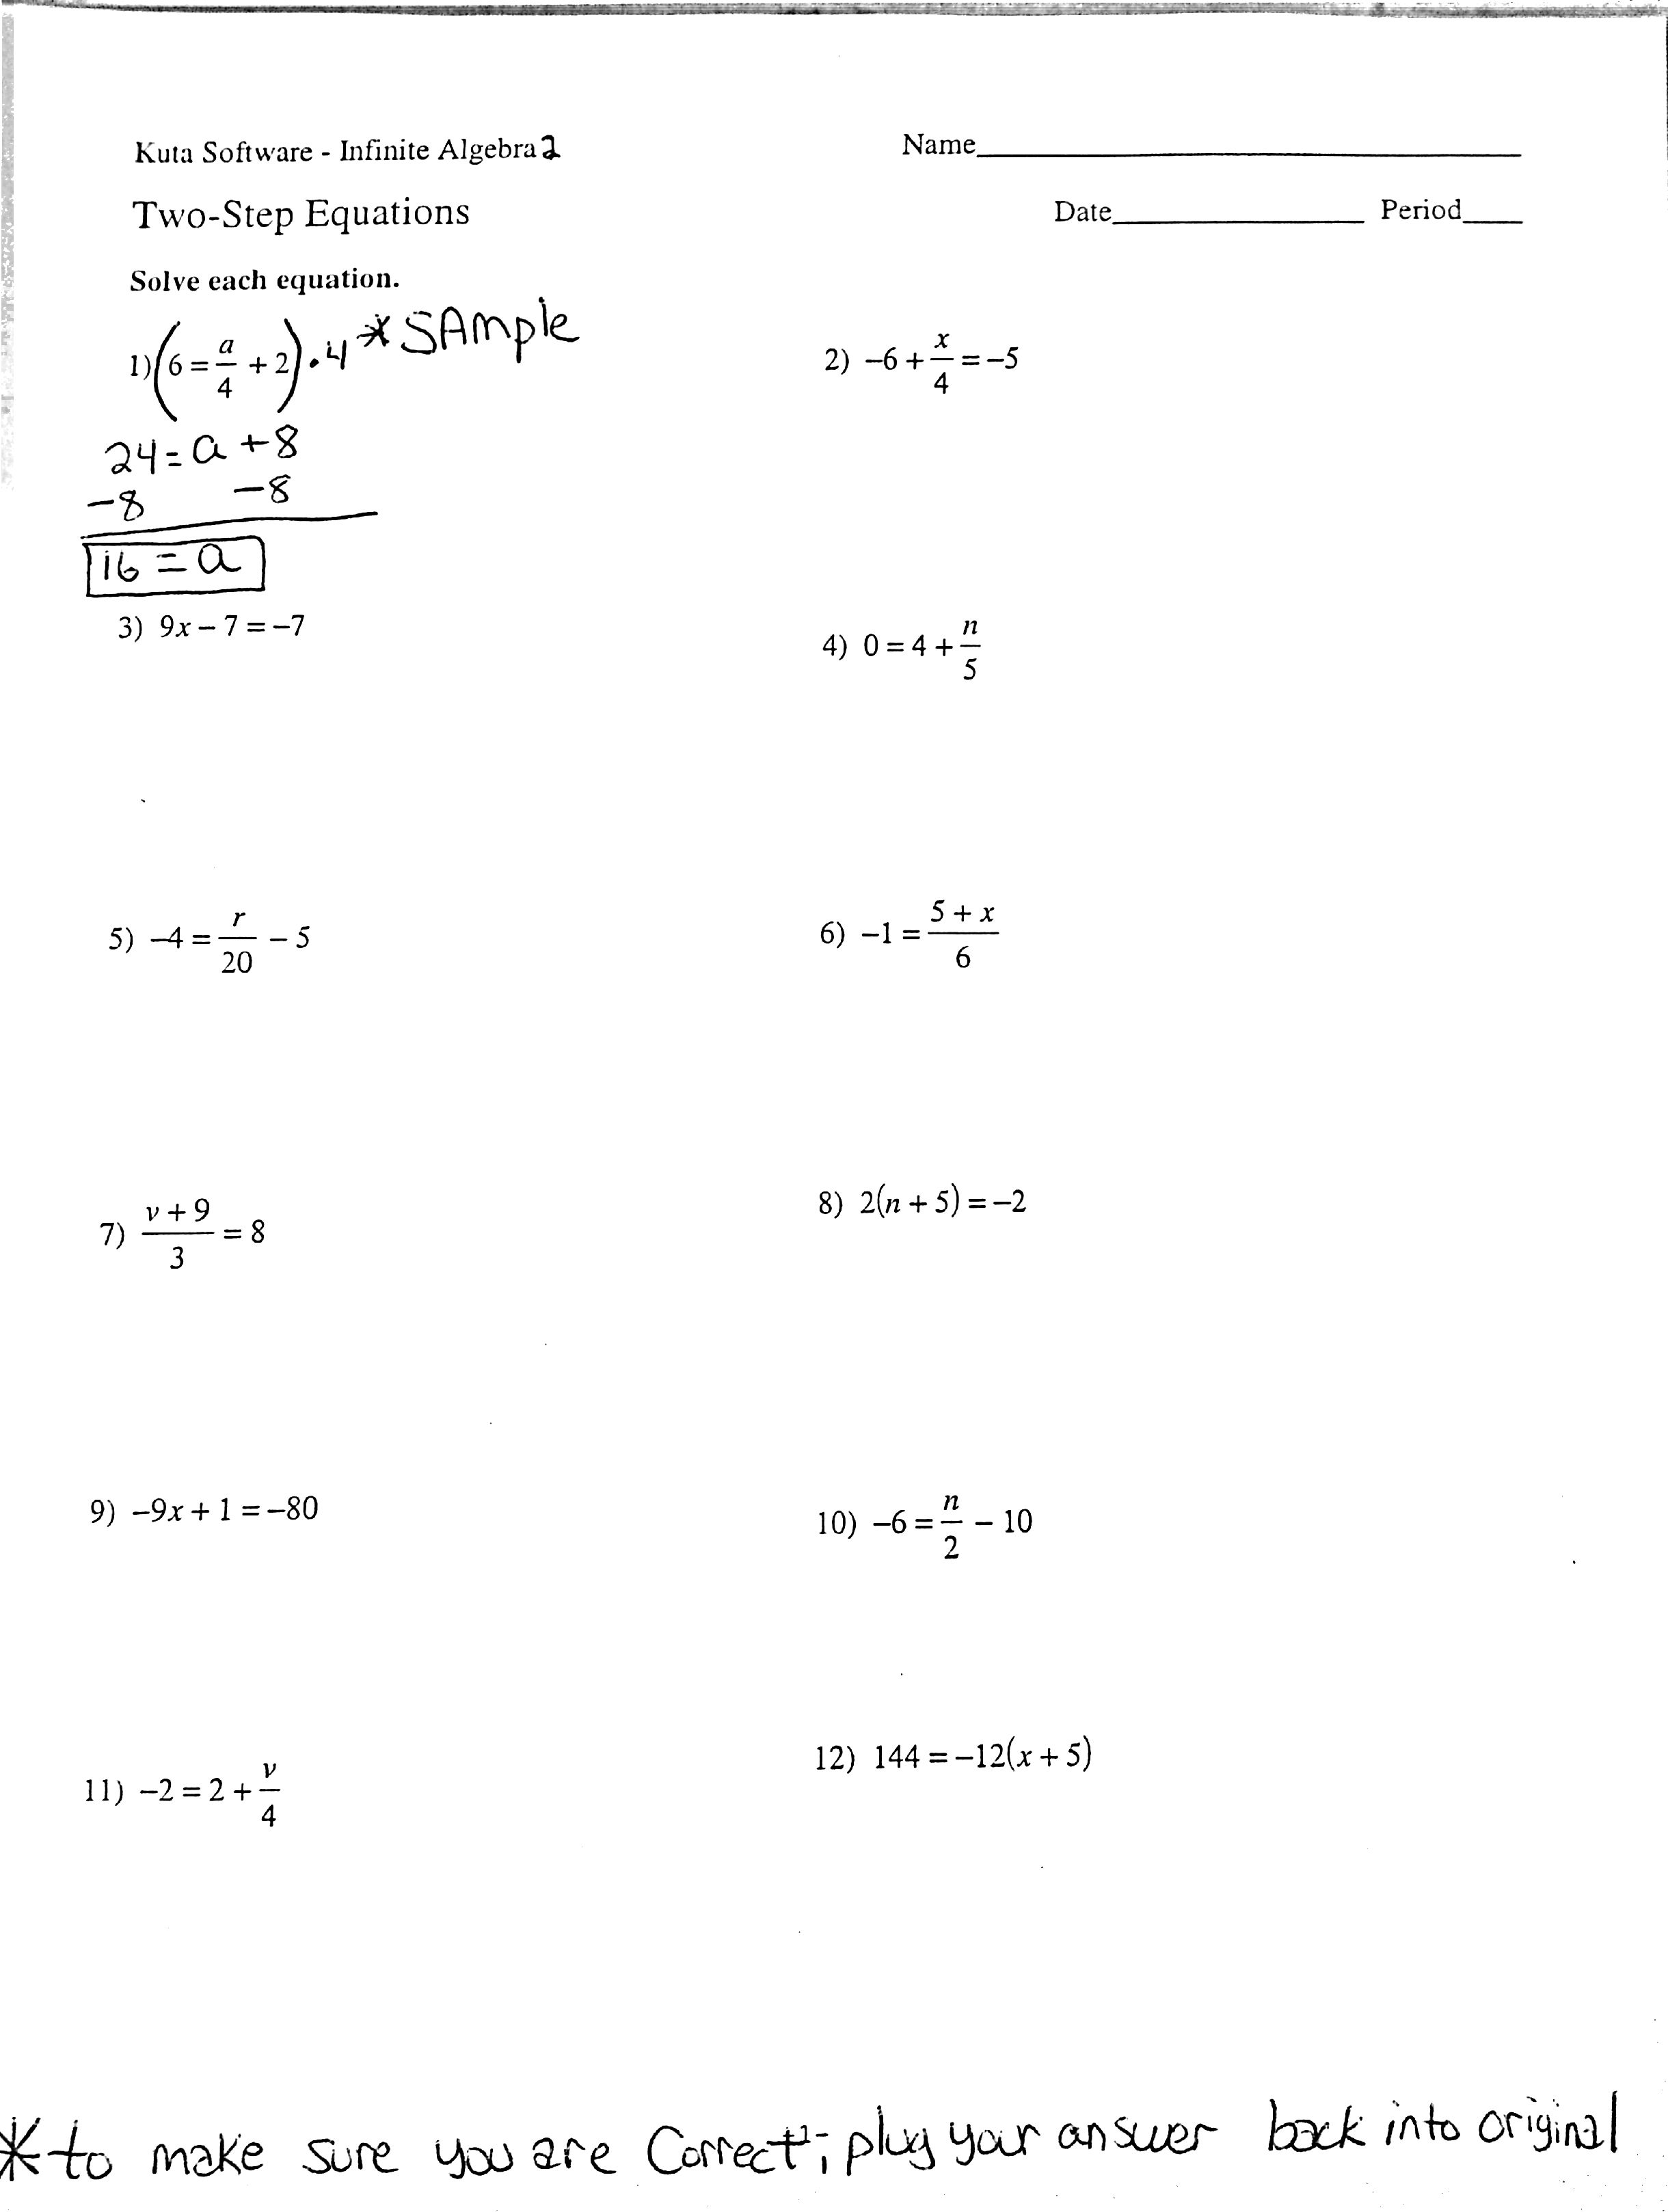 Worksheet 658405 Solving Equations with Fractions Worksheets – Solving Equations with Fractions Worksheets